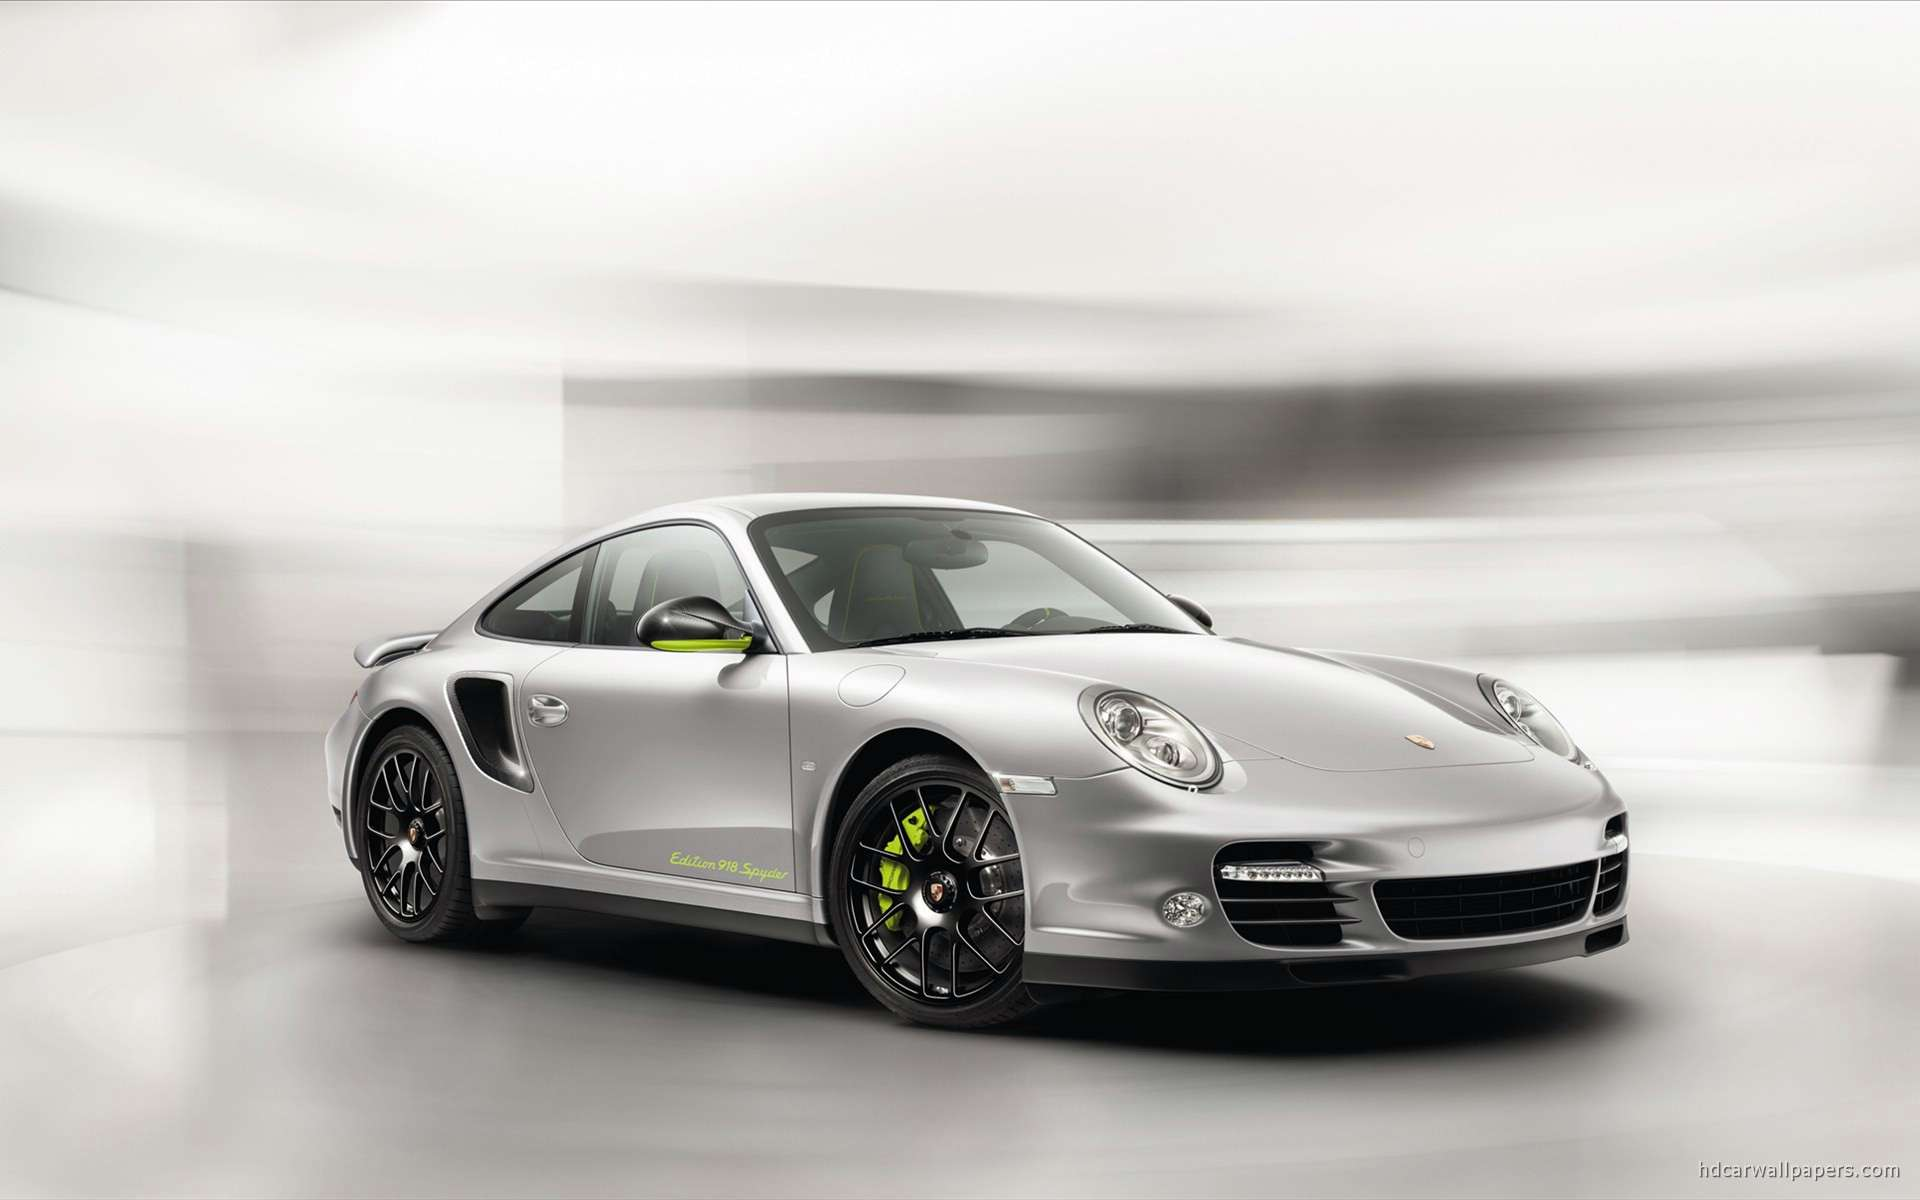 porsche 911 turbo s 918 spyder hd wallpapers hd wallpapers. Black Bedroom Furniture Sets. Home Design Ideas